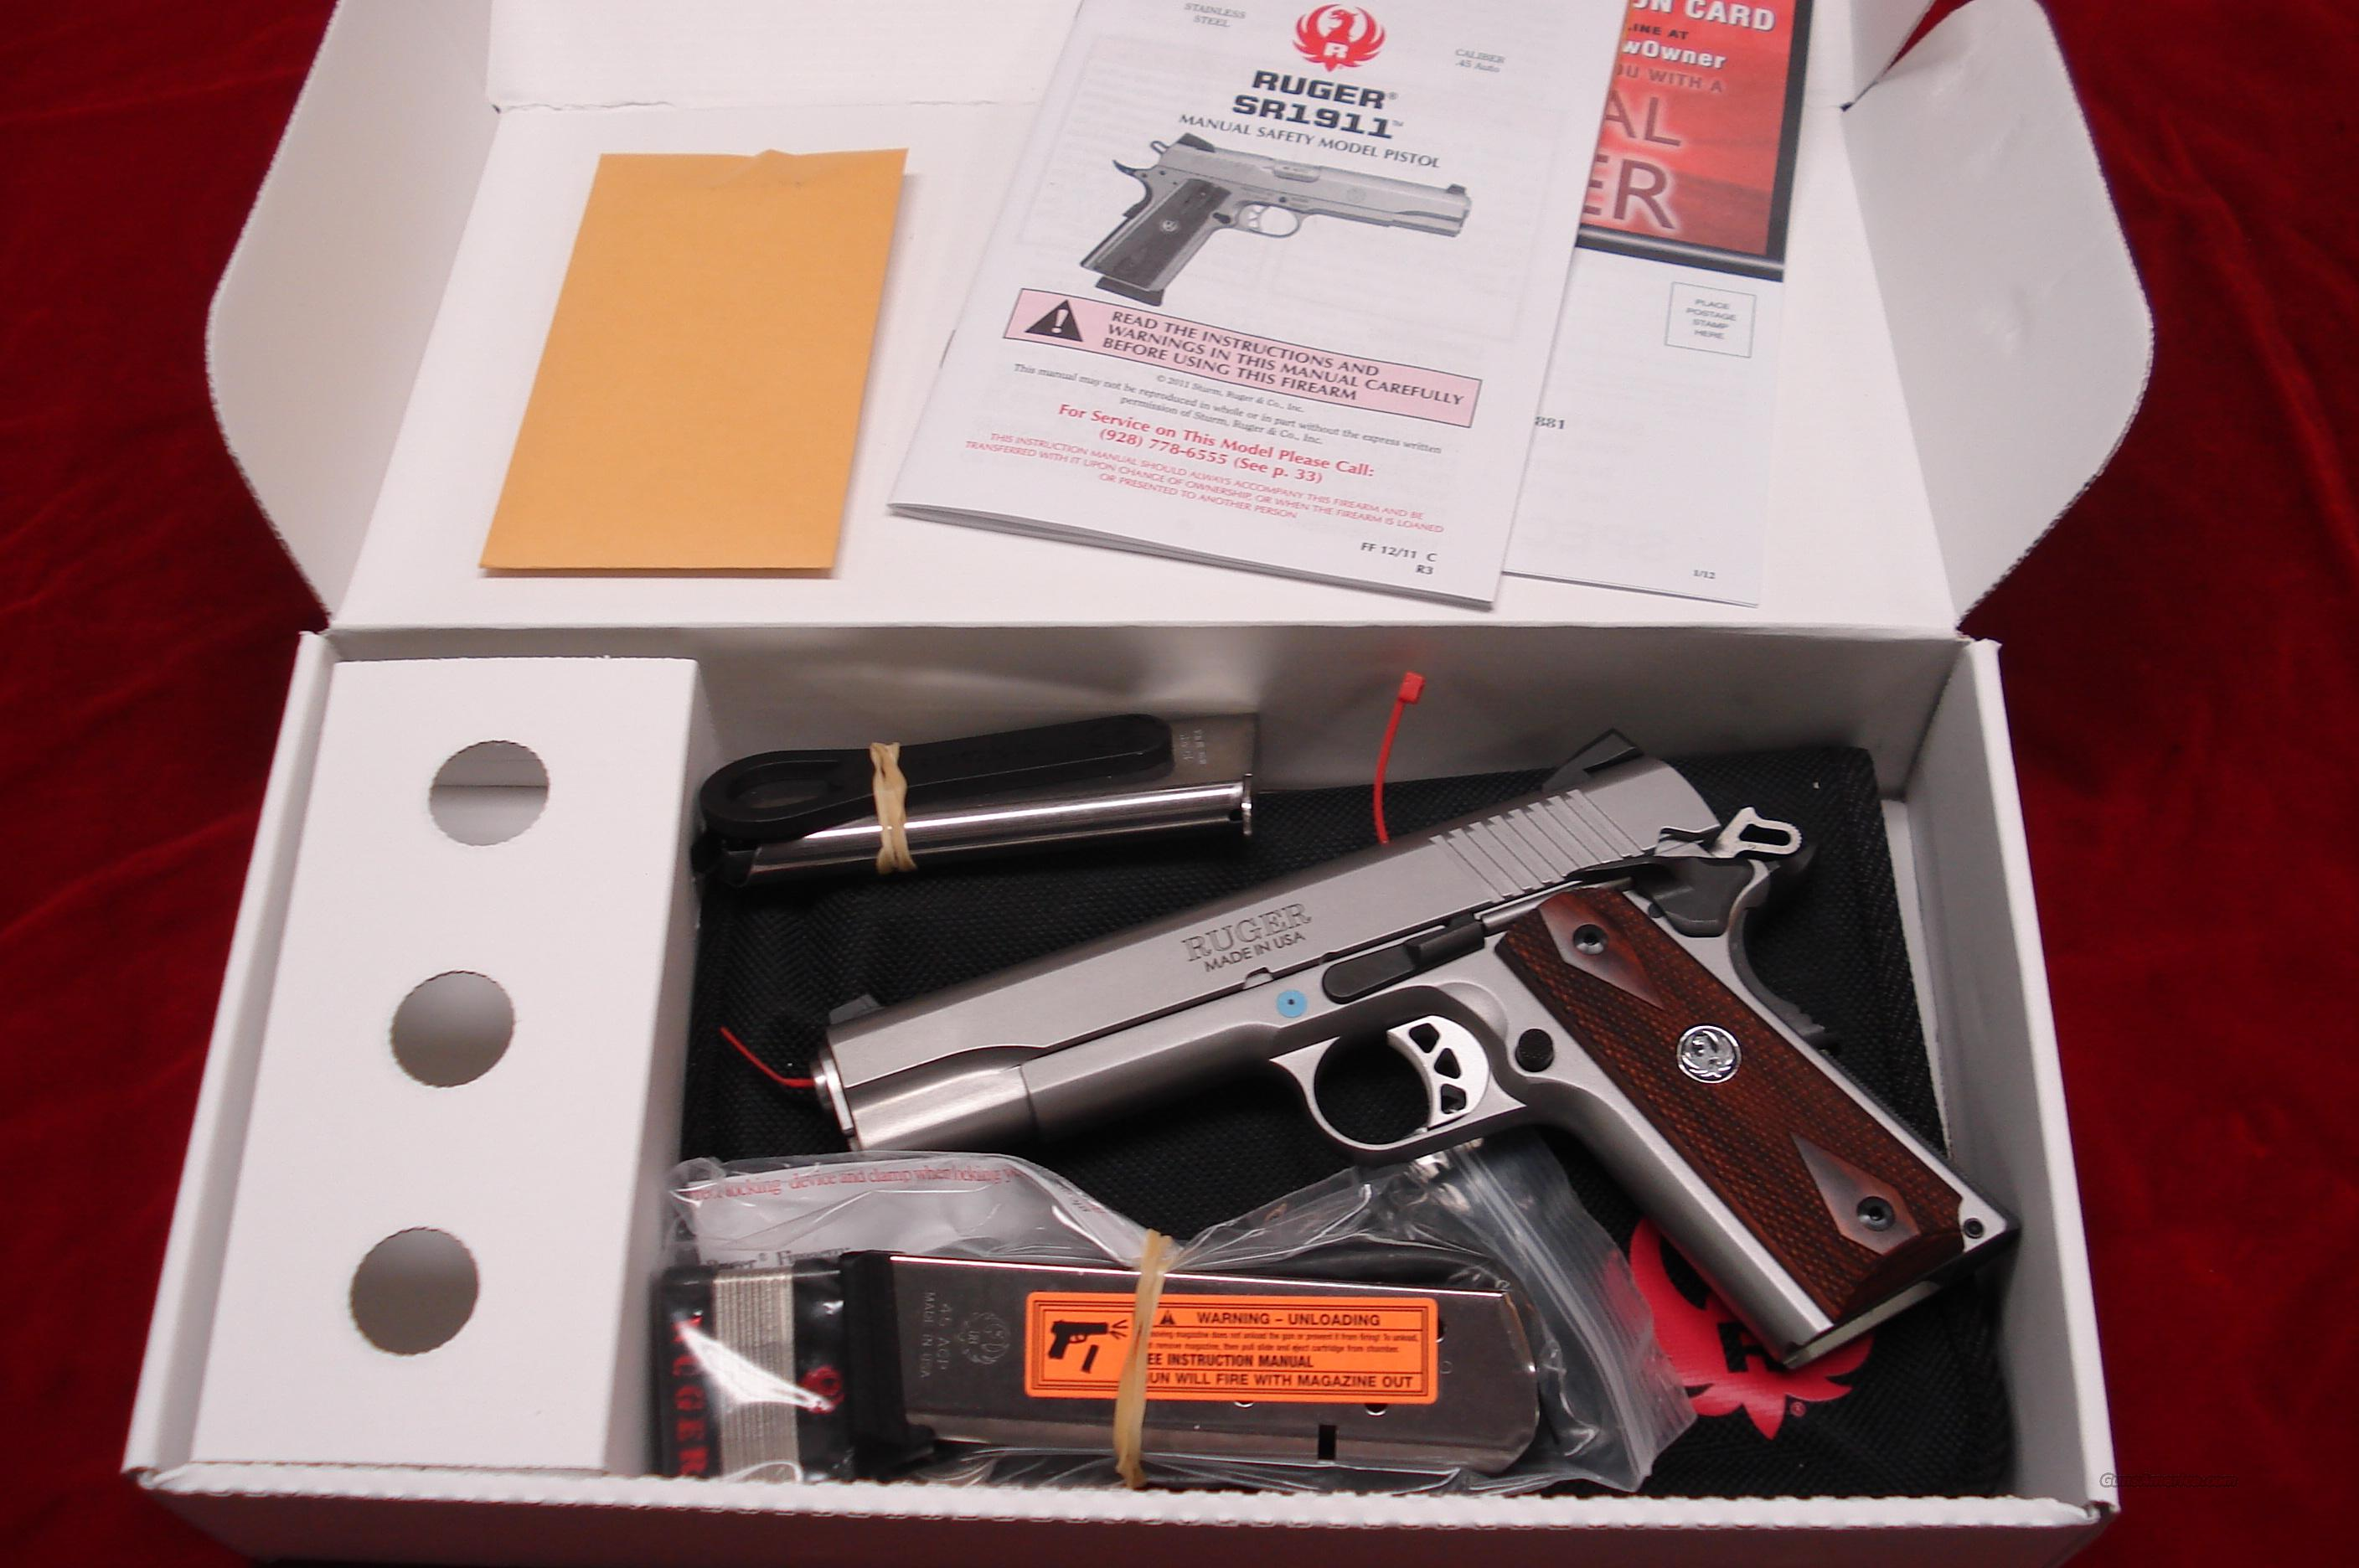 RUGER SR1911 STAINLESS 45ACP NEW   (06700)  Guns > Pistols > Ruger Semi-Auto Pistols > 1911